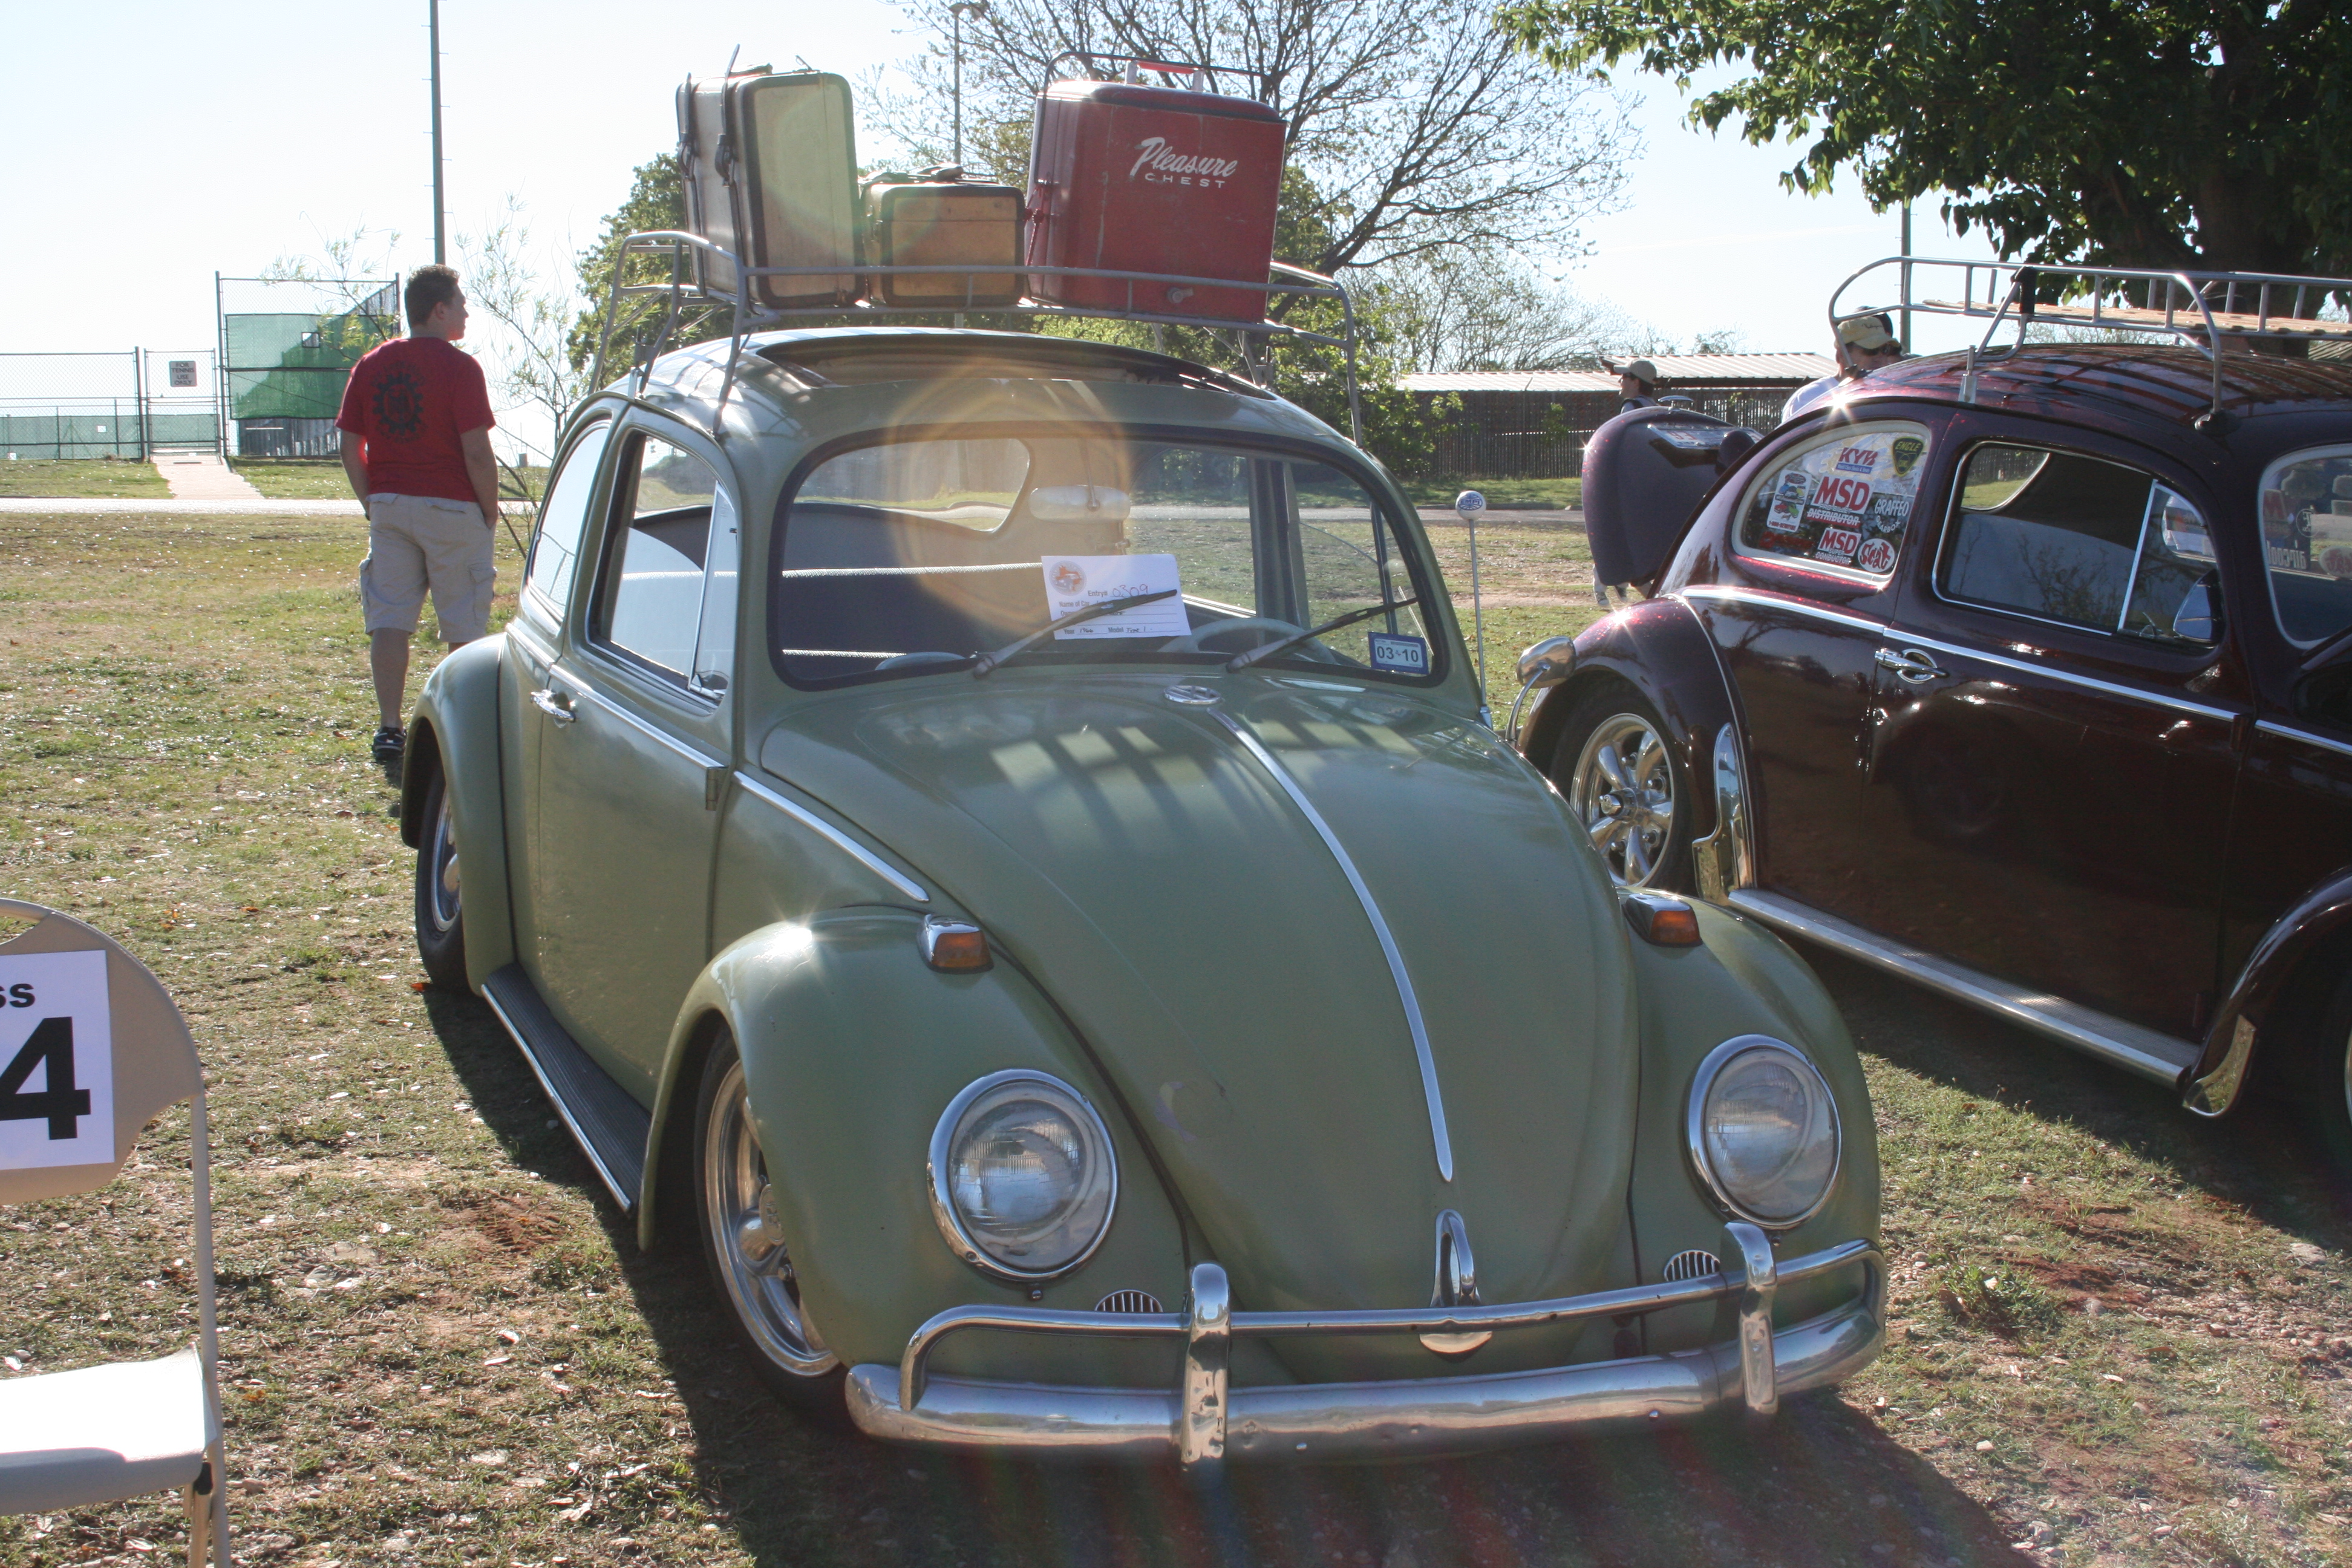 birch and rental neutral volkswagen lounge event pin bus party company with austin photo showroom vw booth an via